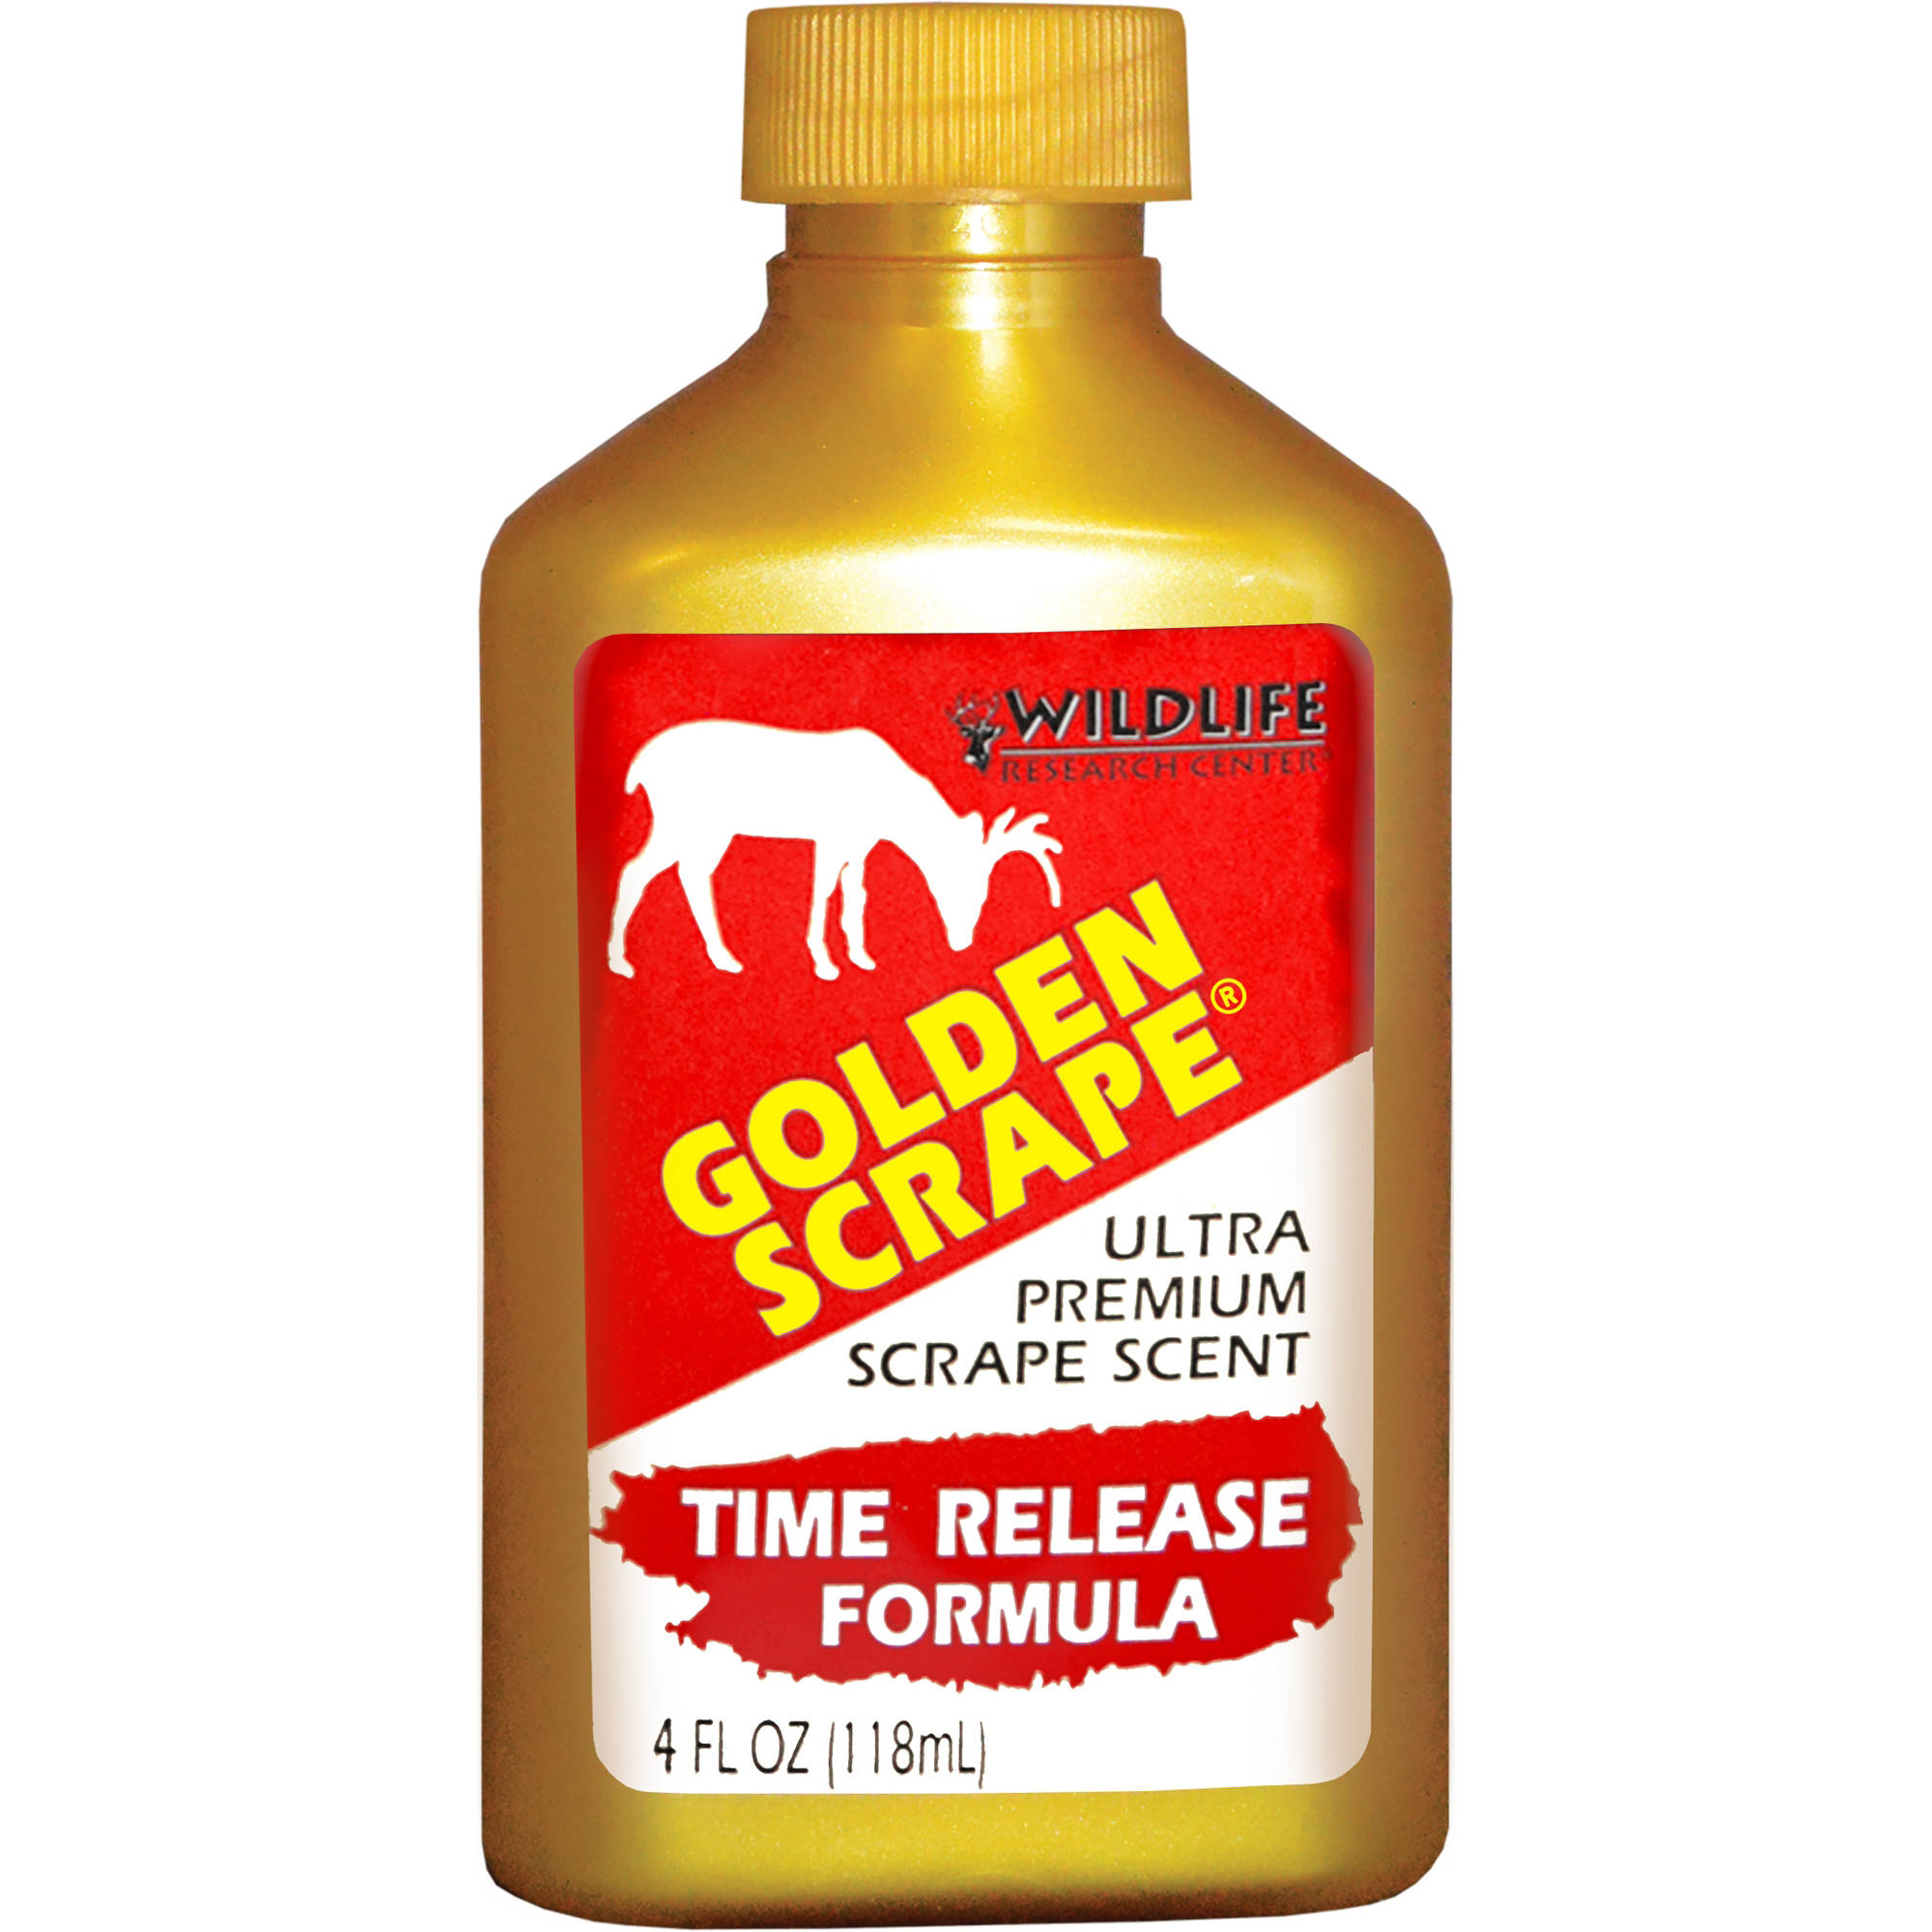 Wildlife Research Center Golden Scrape, 4 fl oz